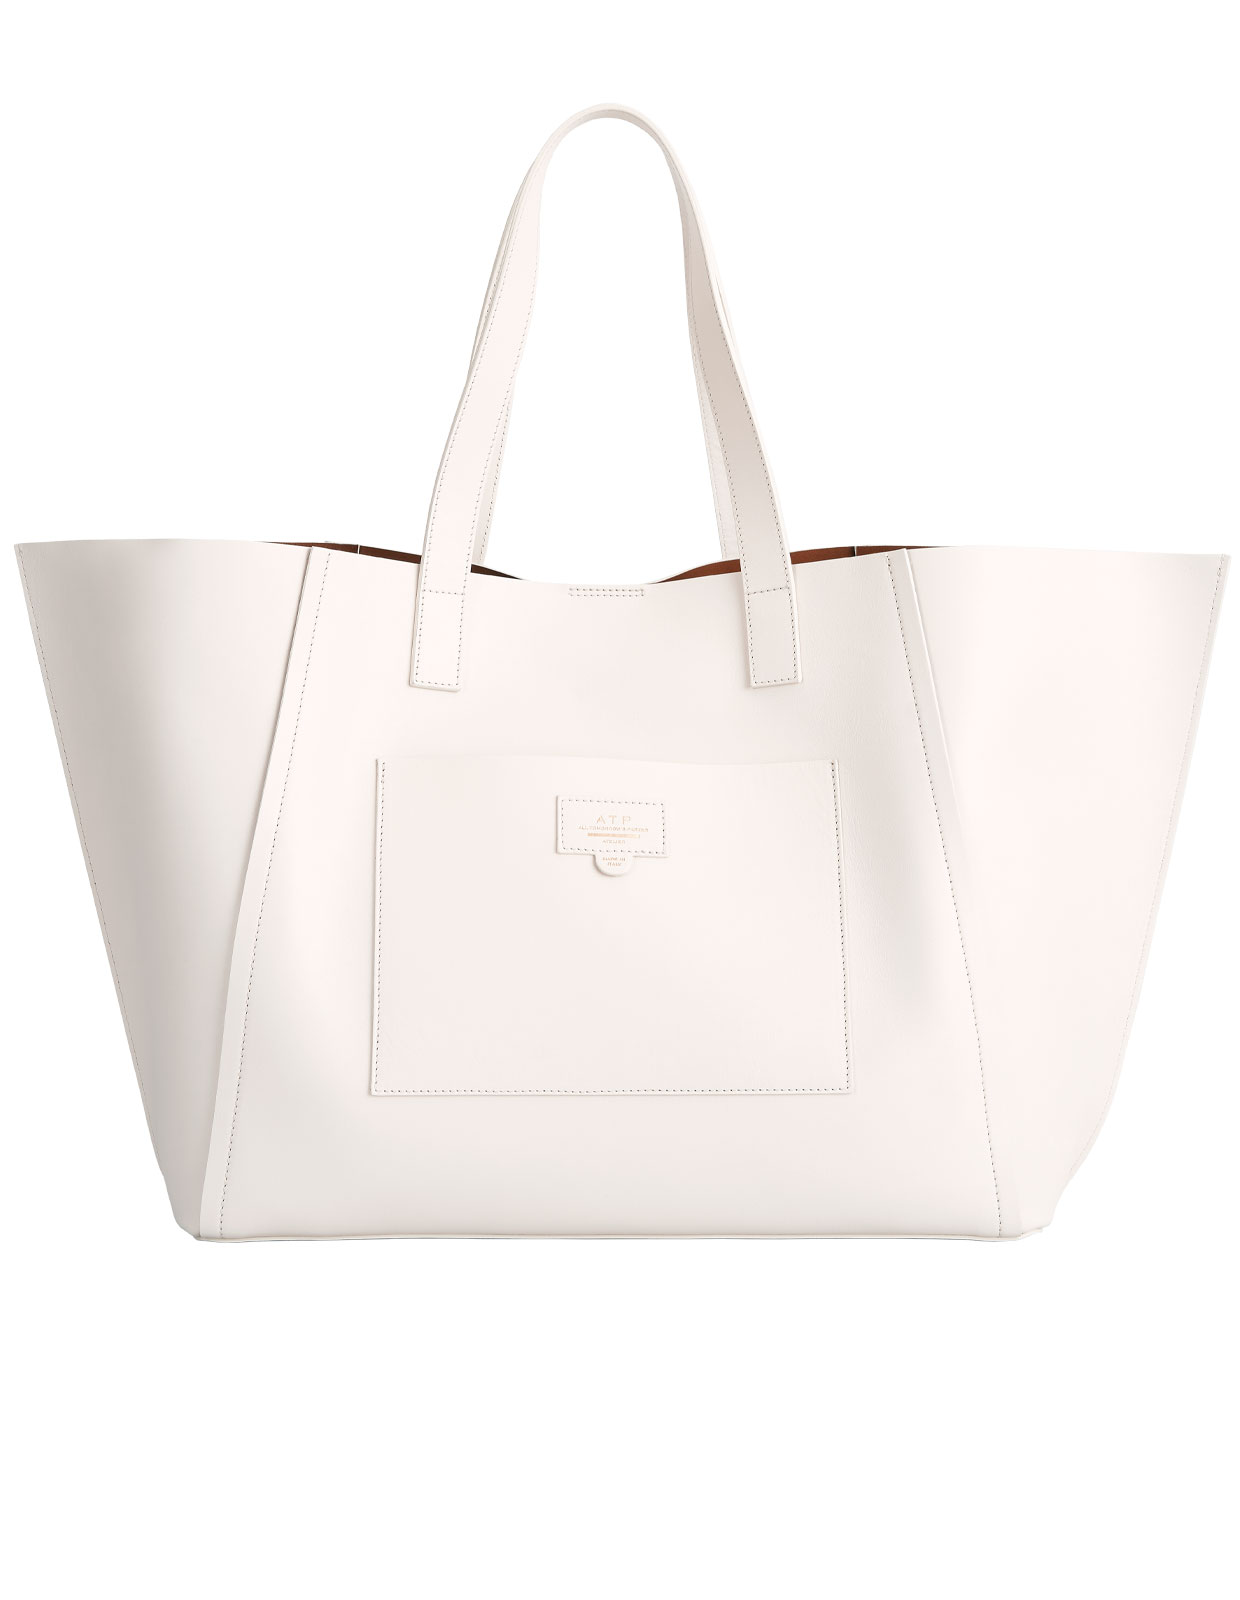 Conversano Tote Bag Ice White